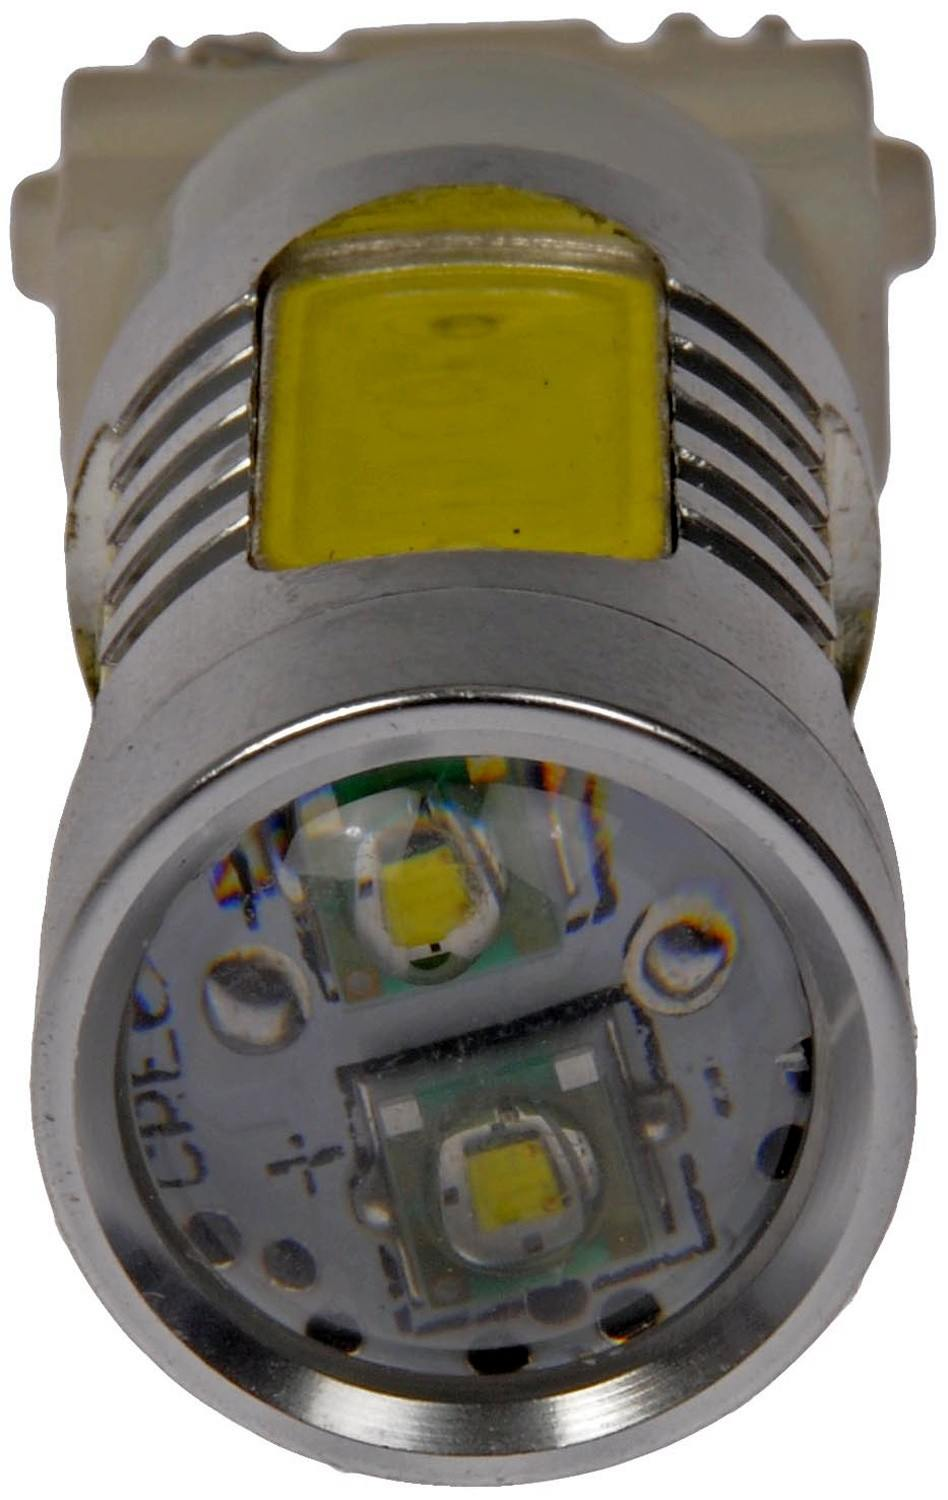 DORMAN - CONDUCT-TITE - Back Up Light Bulb - DCT 3156W-HP